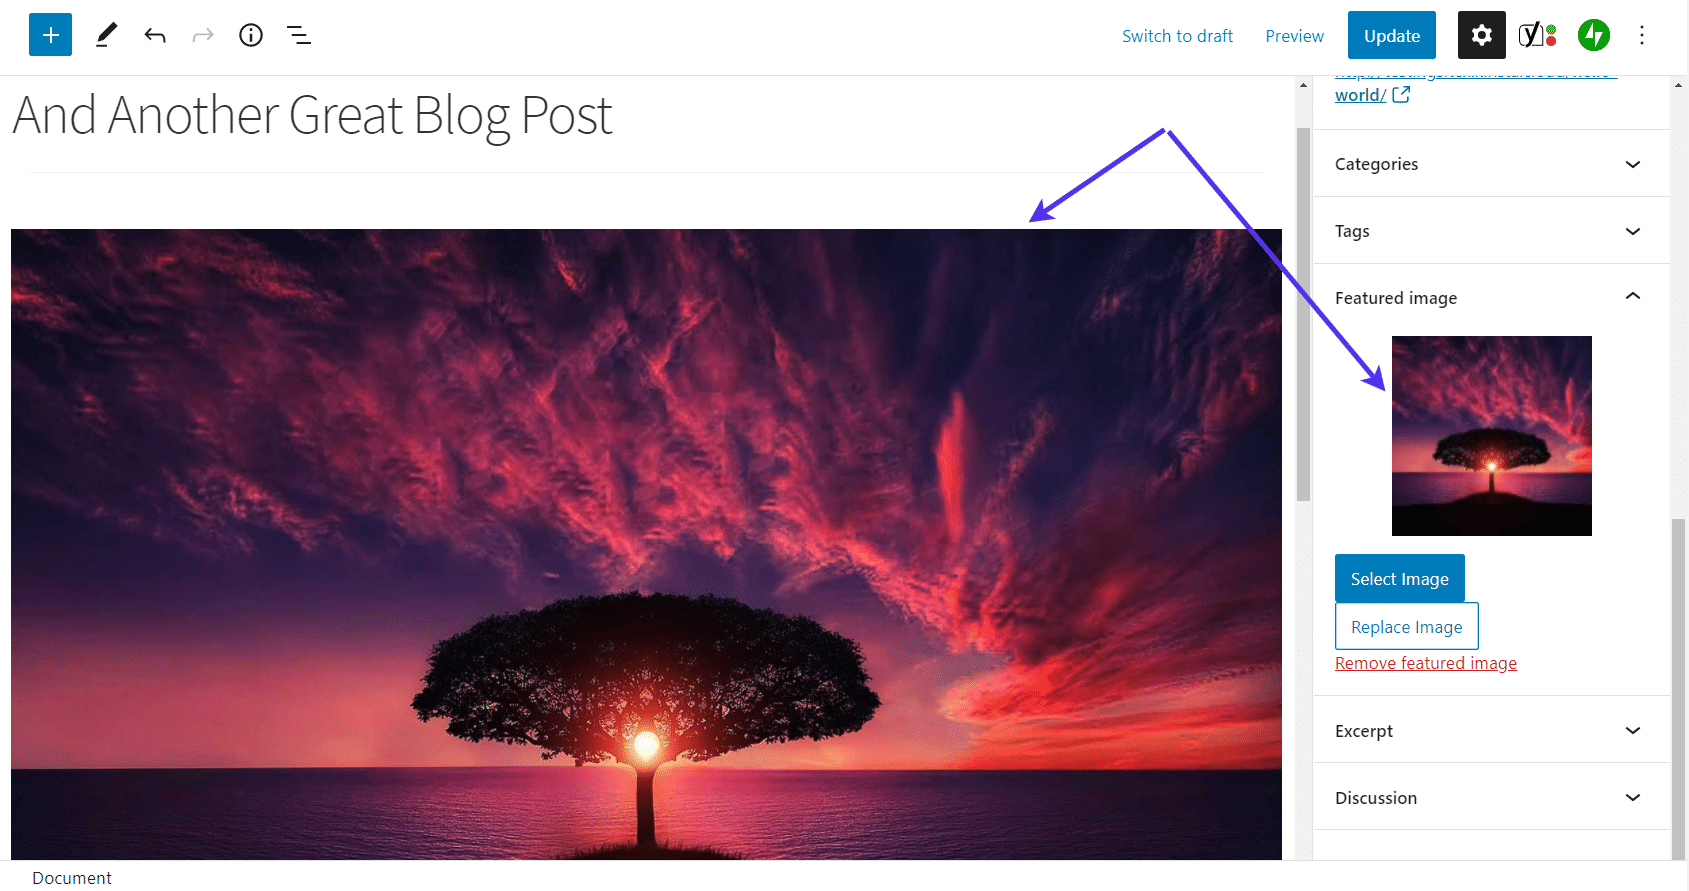 Showing the featured image